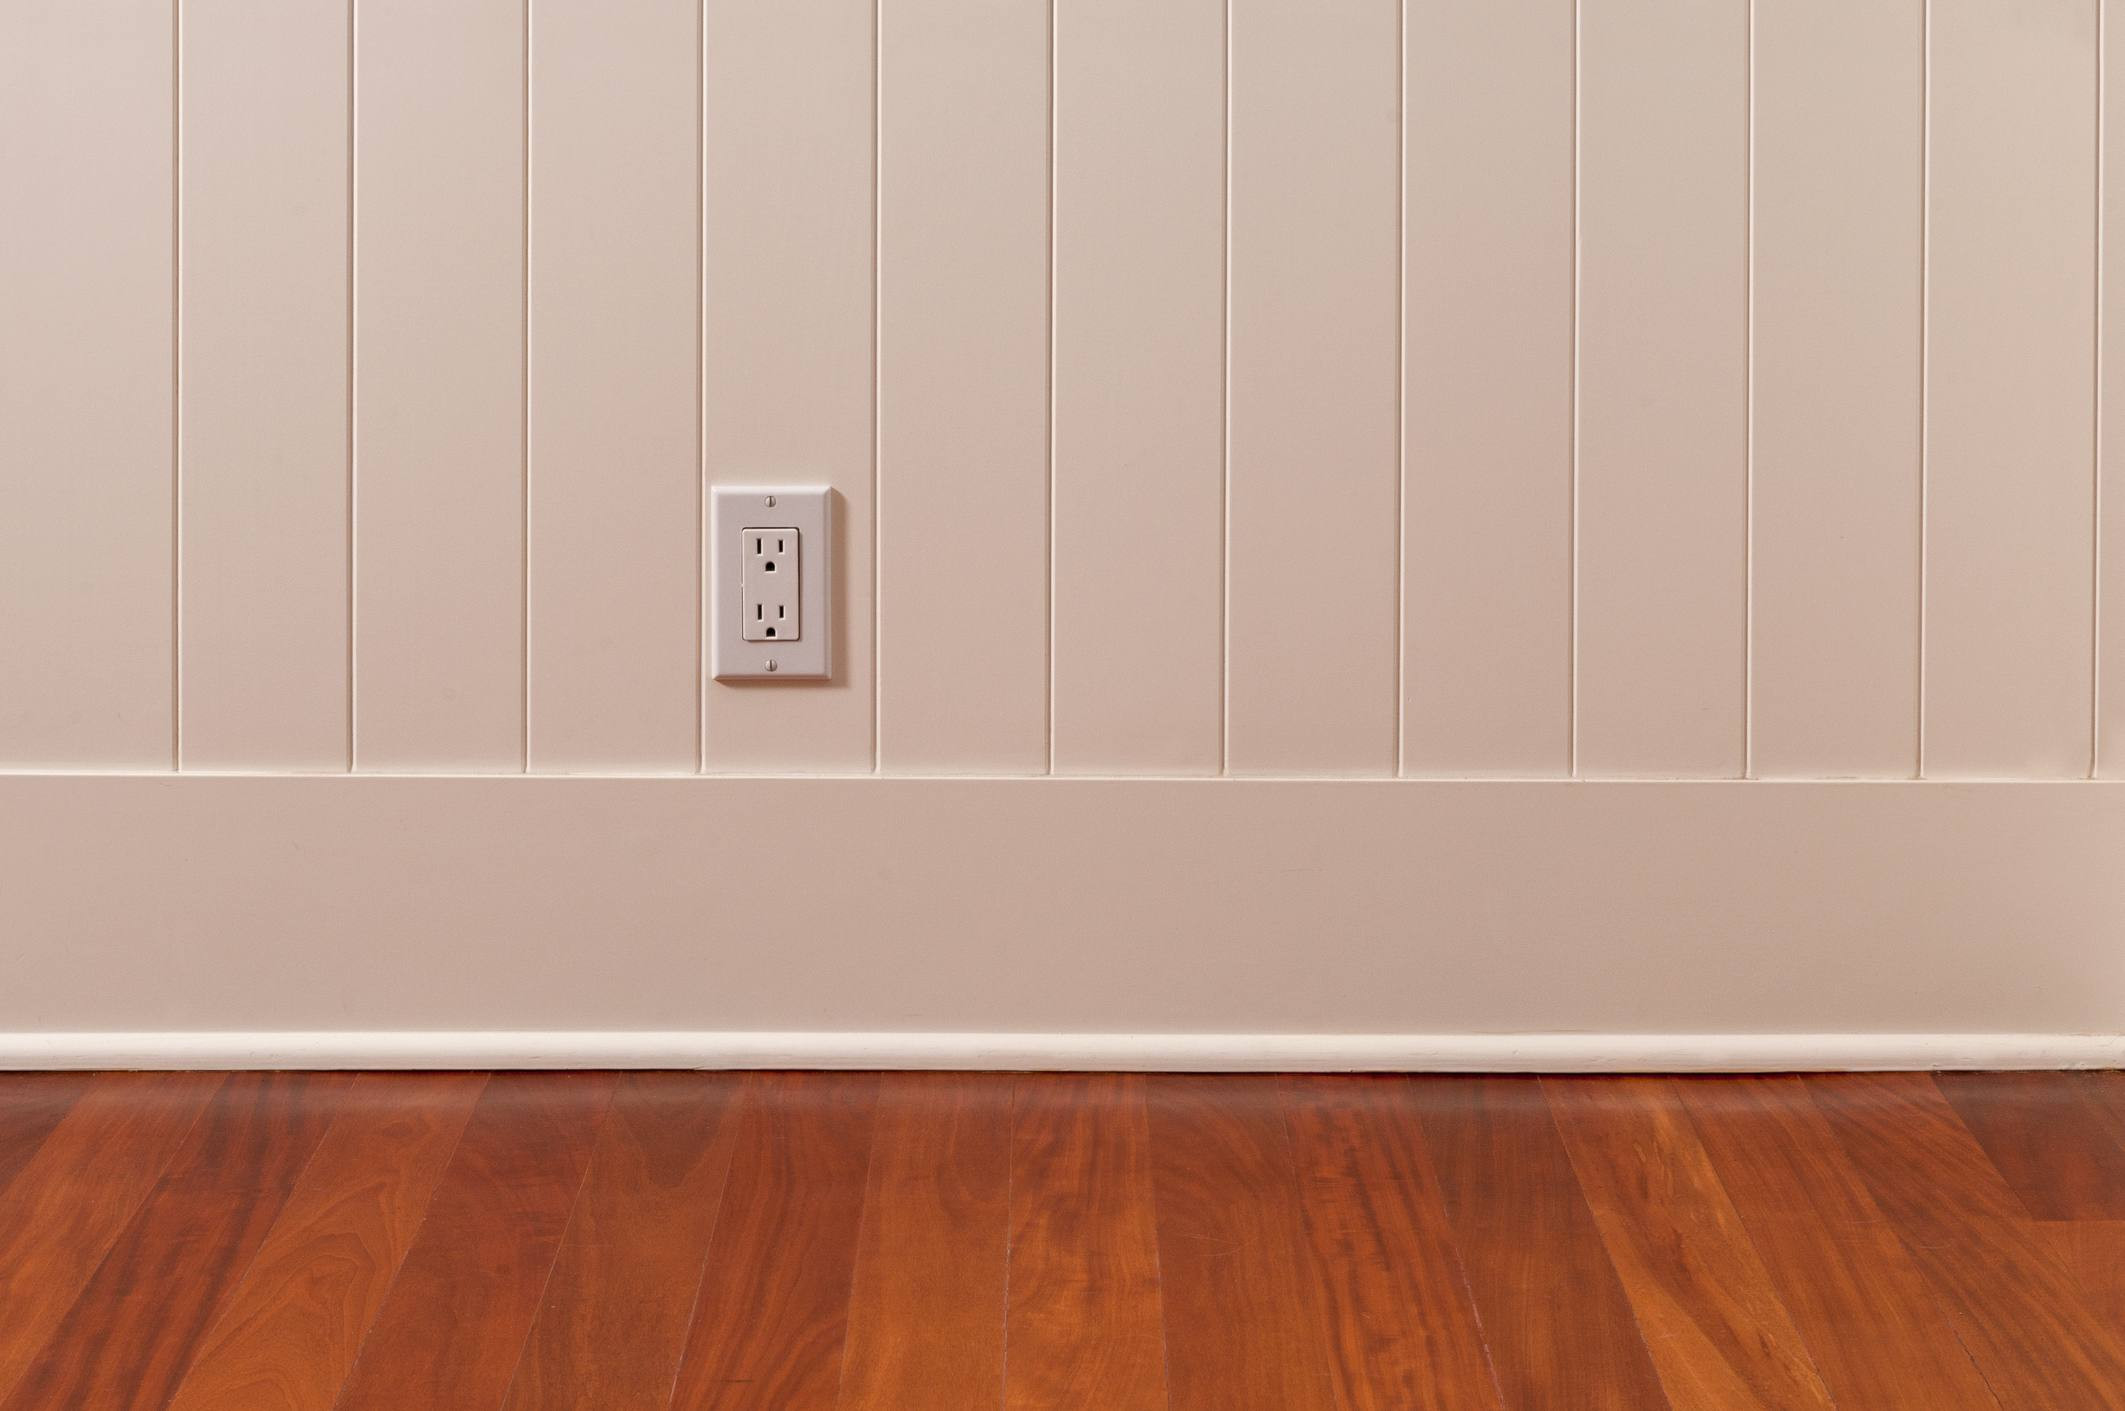 hardwood floor molding types of how to install shoe molding or quarter round molding with quarter round installed on baseboard 164003254 57a500d85f9b58974a84b0f6